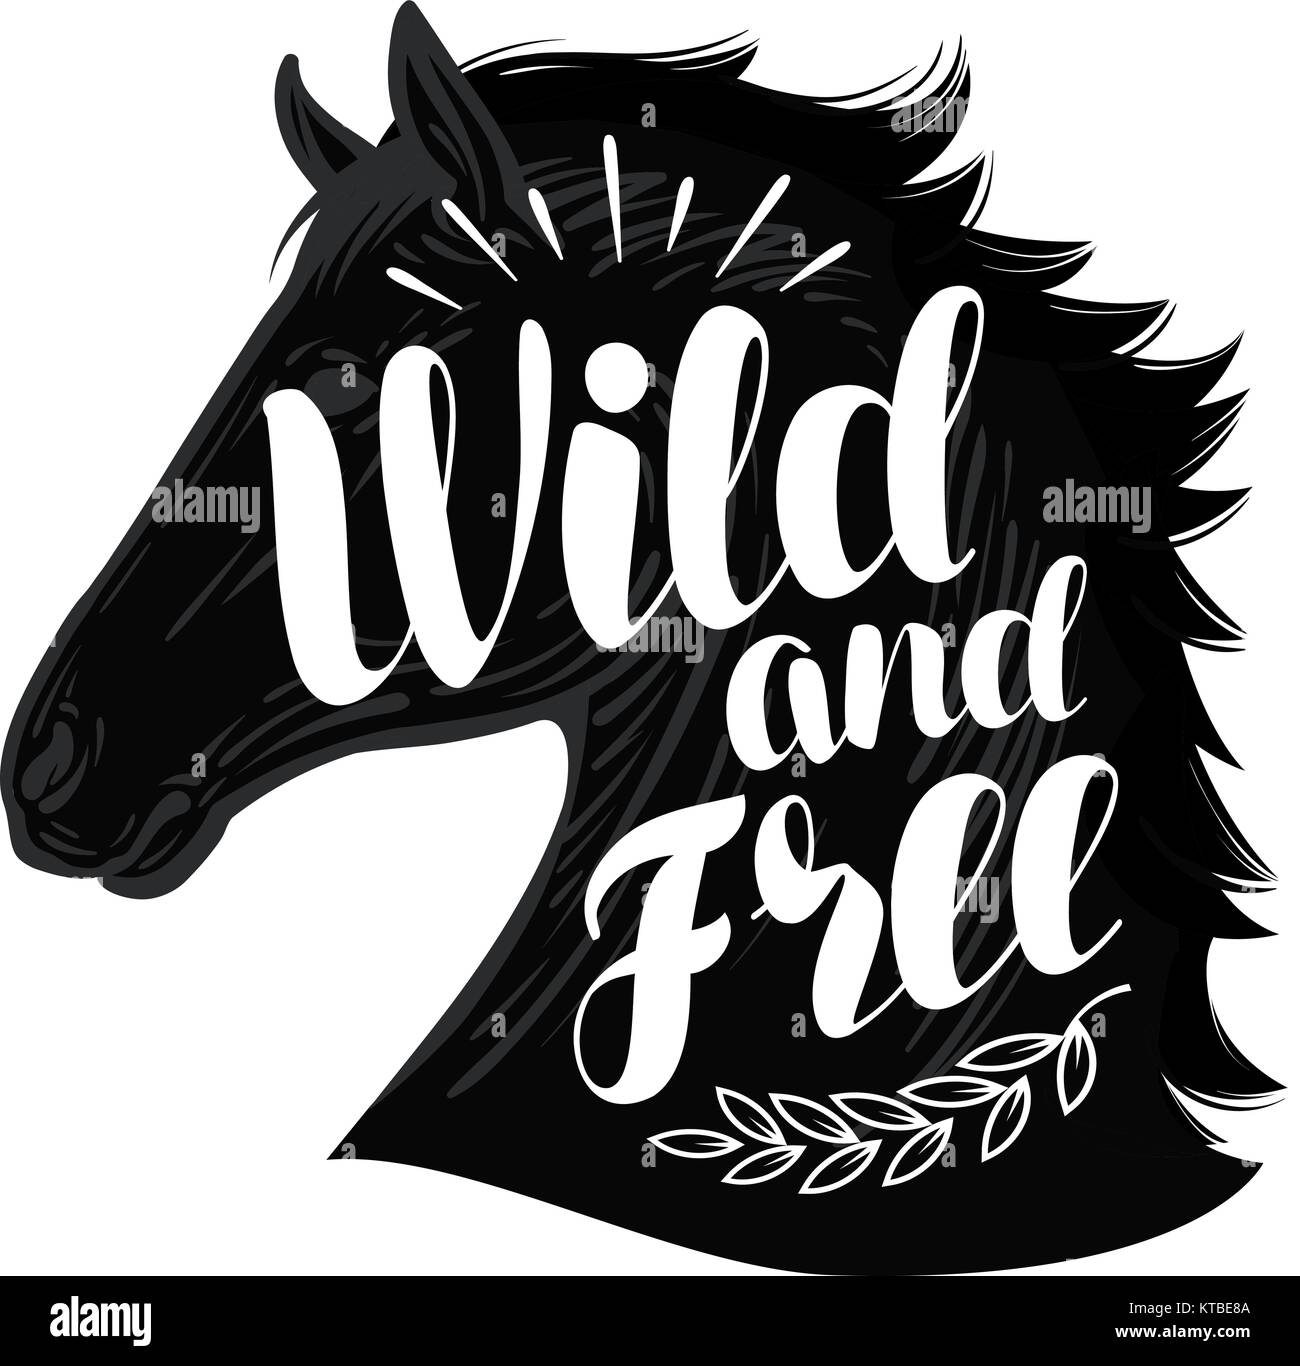 Horse. Wild and free, lettering. Typographic design vector illustration - Stock Image